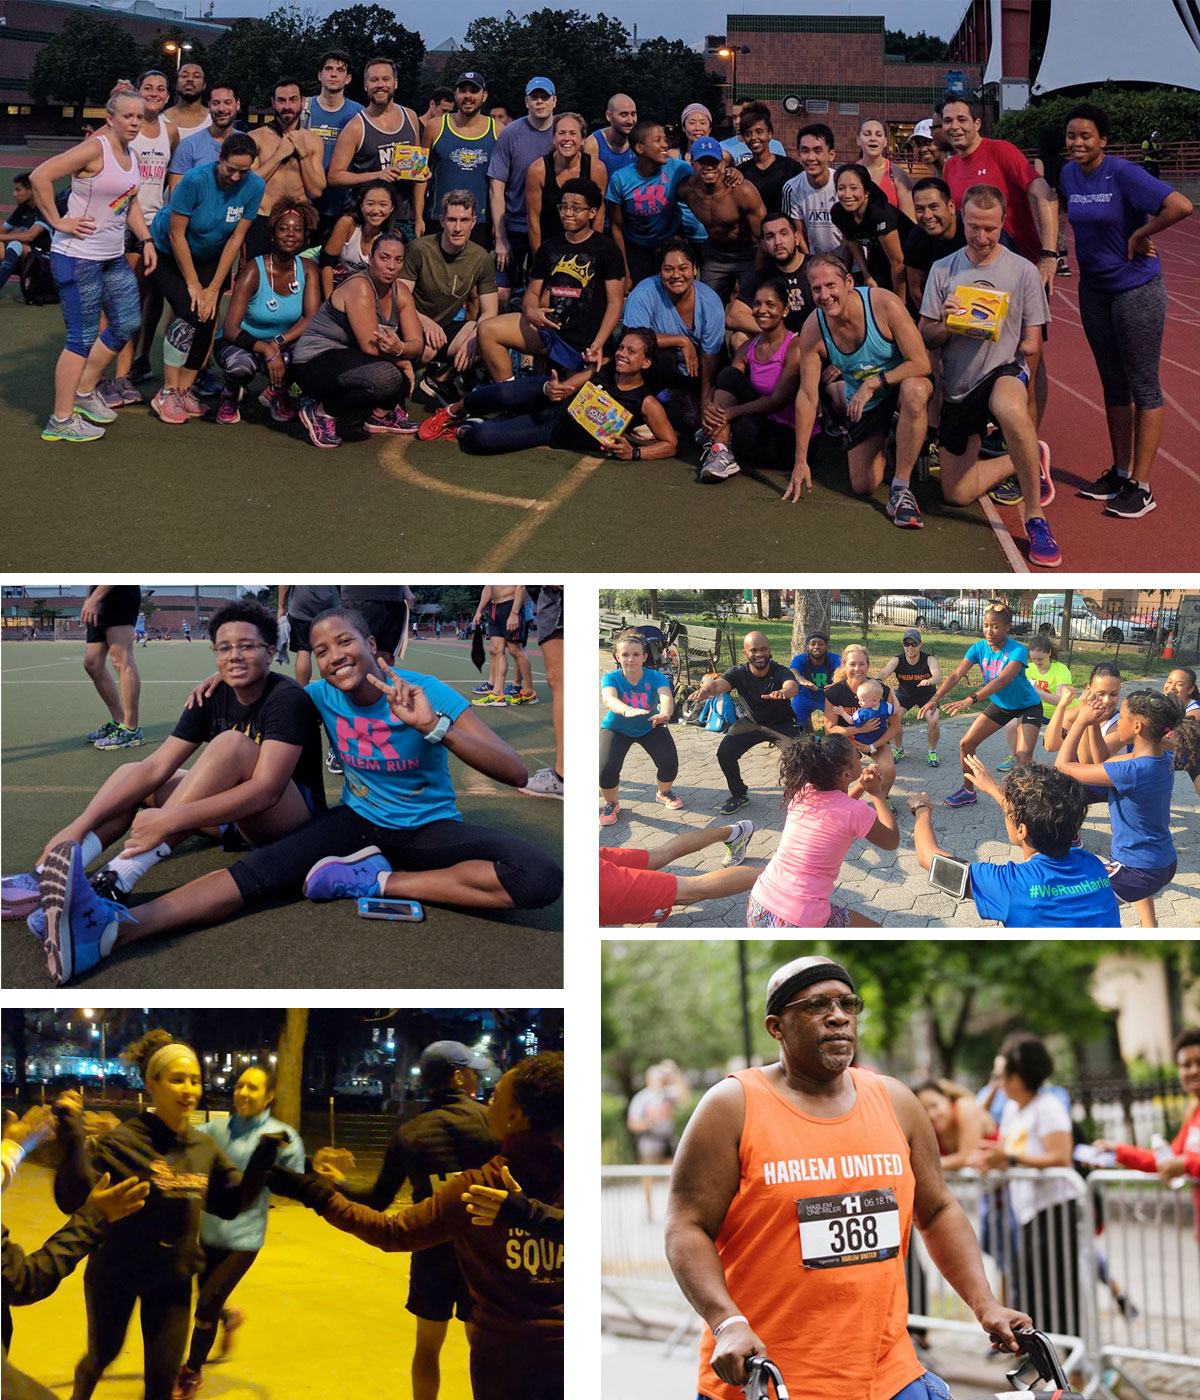 Photo collage featuring runners of various ages, genders, skin colors, and body shapes running, walking, working out, and relaxing together